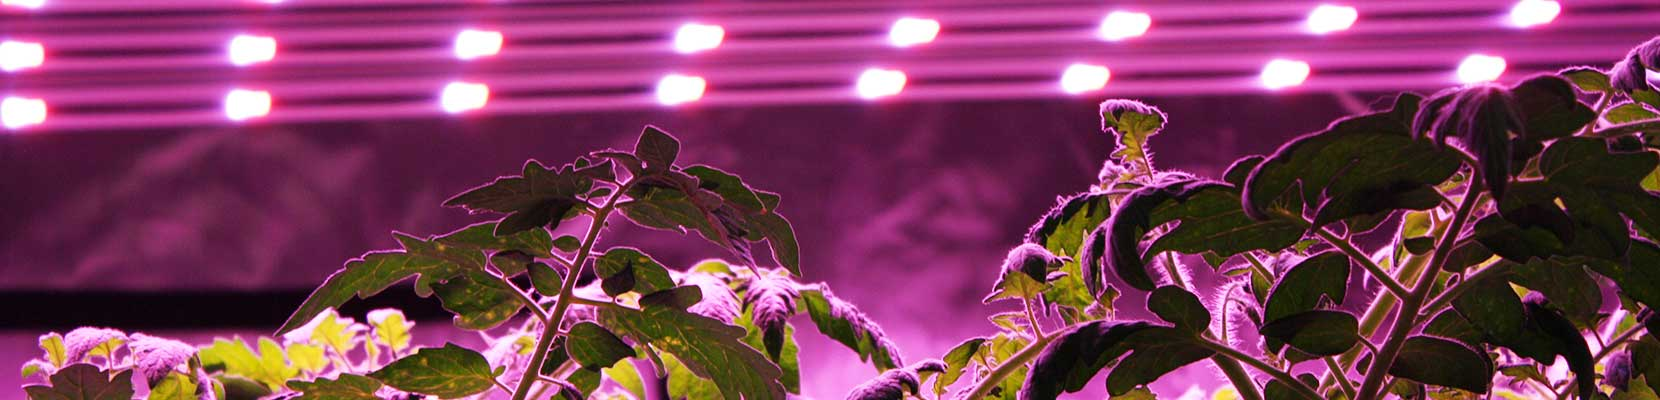 The HPS Vs LED Grow Light Matchup Is A Clash Of The Titans. Is LED More  Efficient Than HPS? Do LED Grow Lights Yield More? Are They Equivalent?